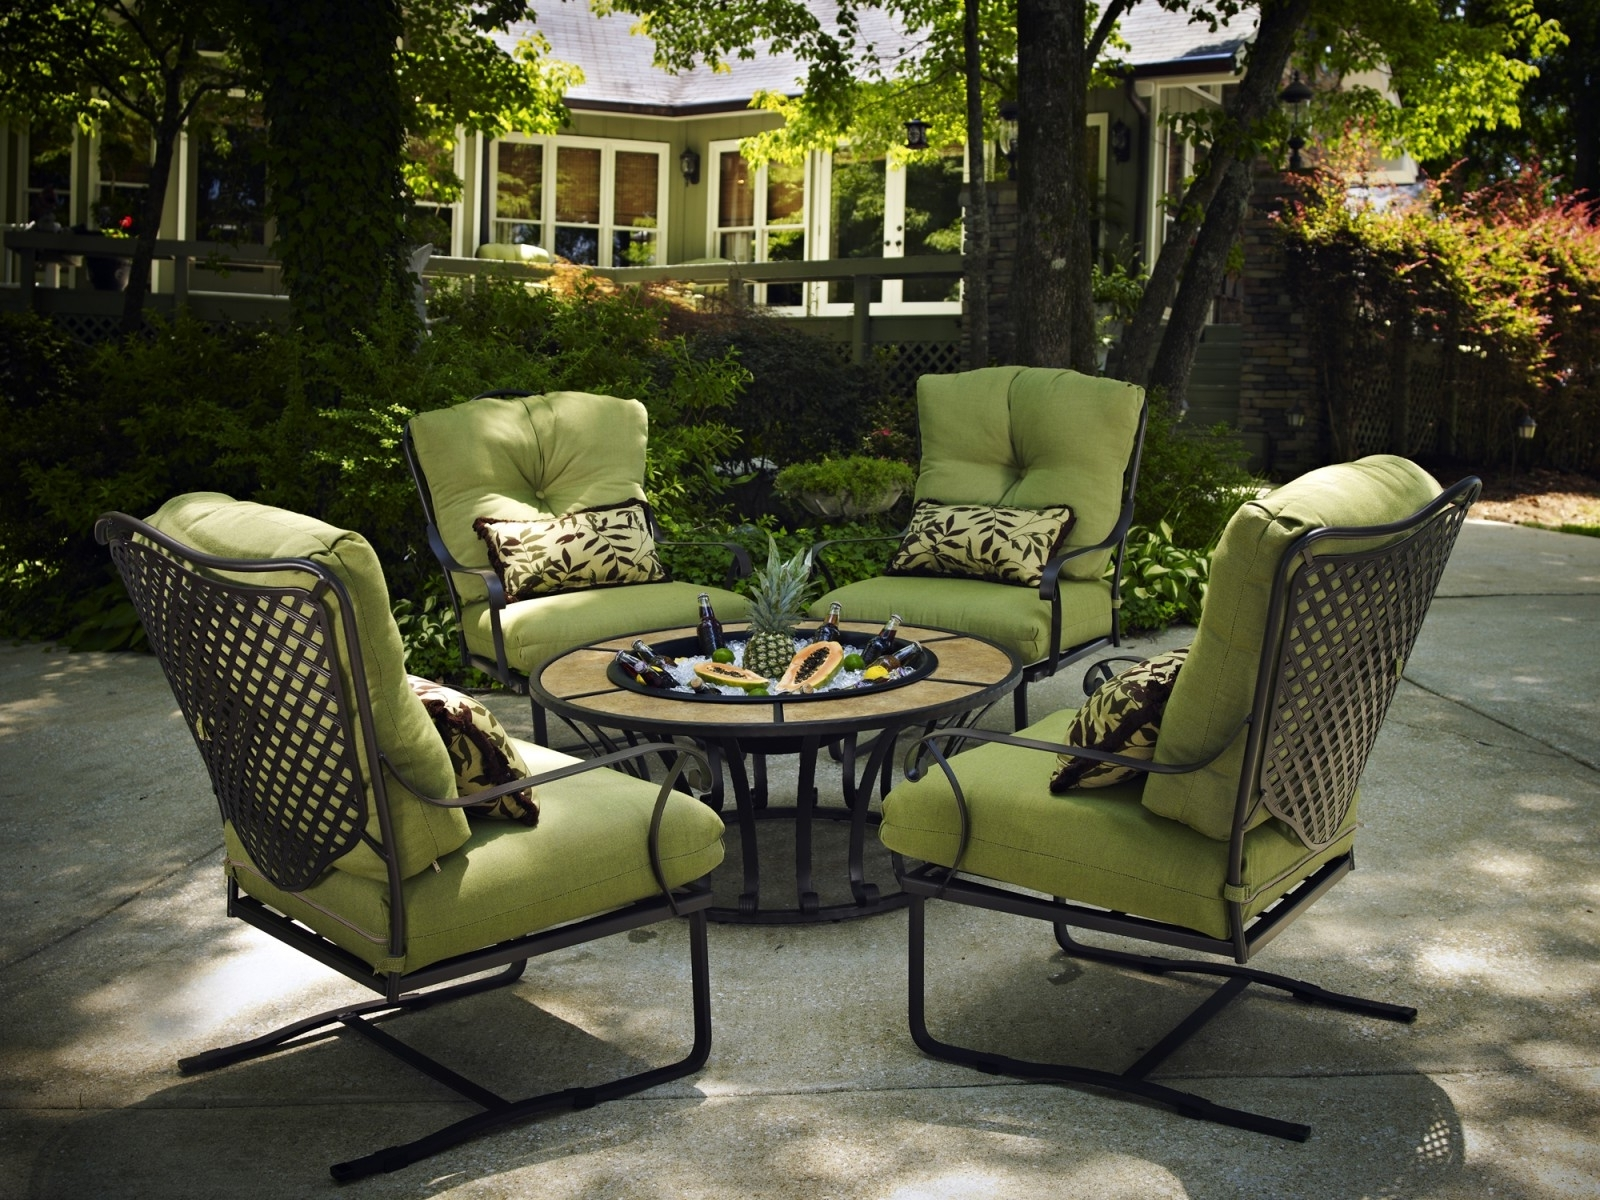 Patio : Wrought Iron Patio Furnitureca Furniture Value Plantation Throughout Most Recently Released Black Patio Conversation Sets (View 12 of 20)